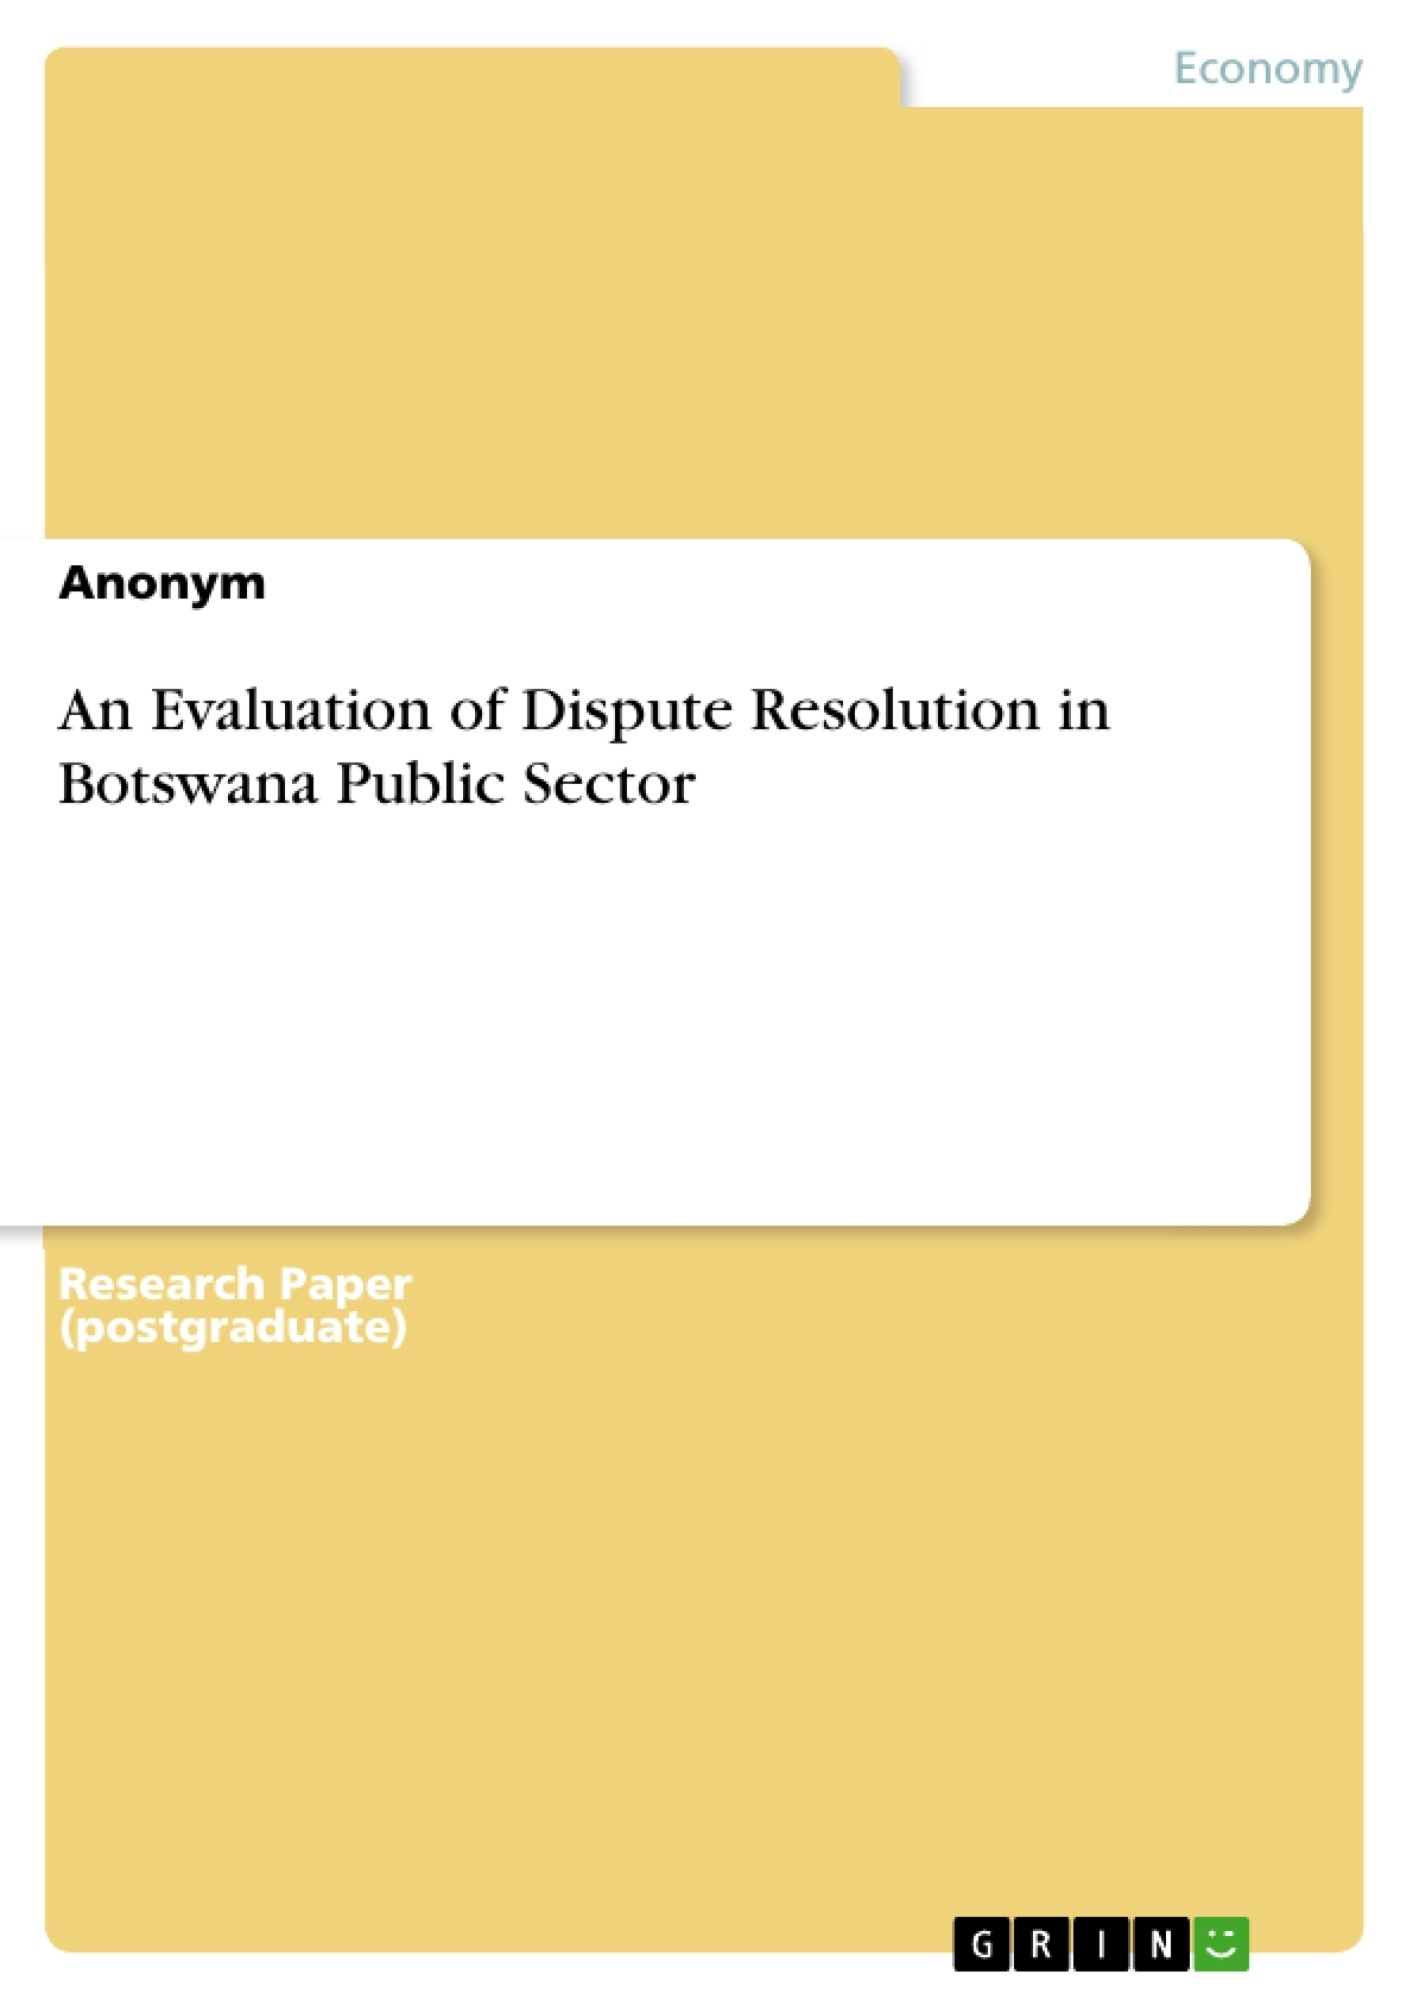 Title: An Evaluation of Dispute Resolution in Botswana Public Sector